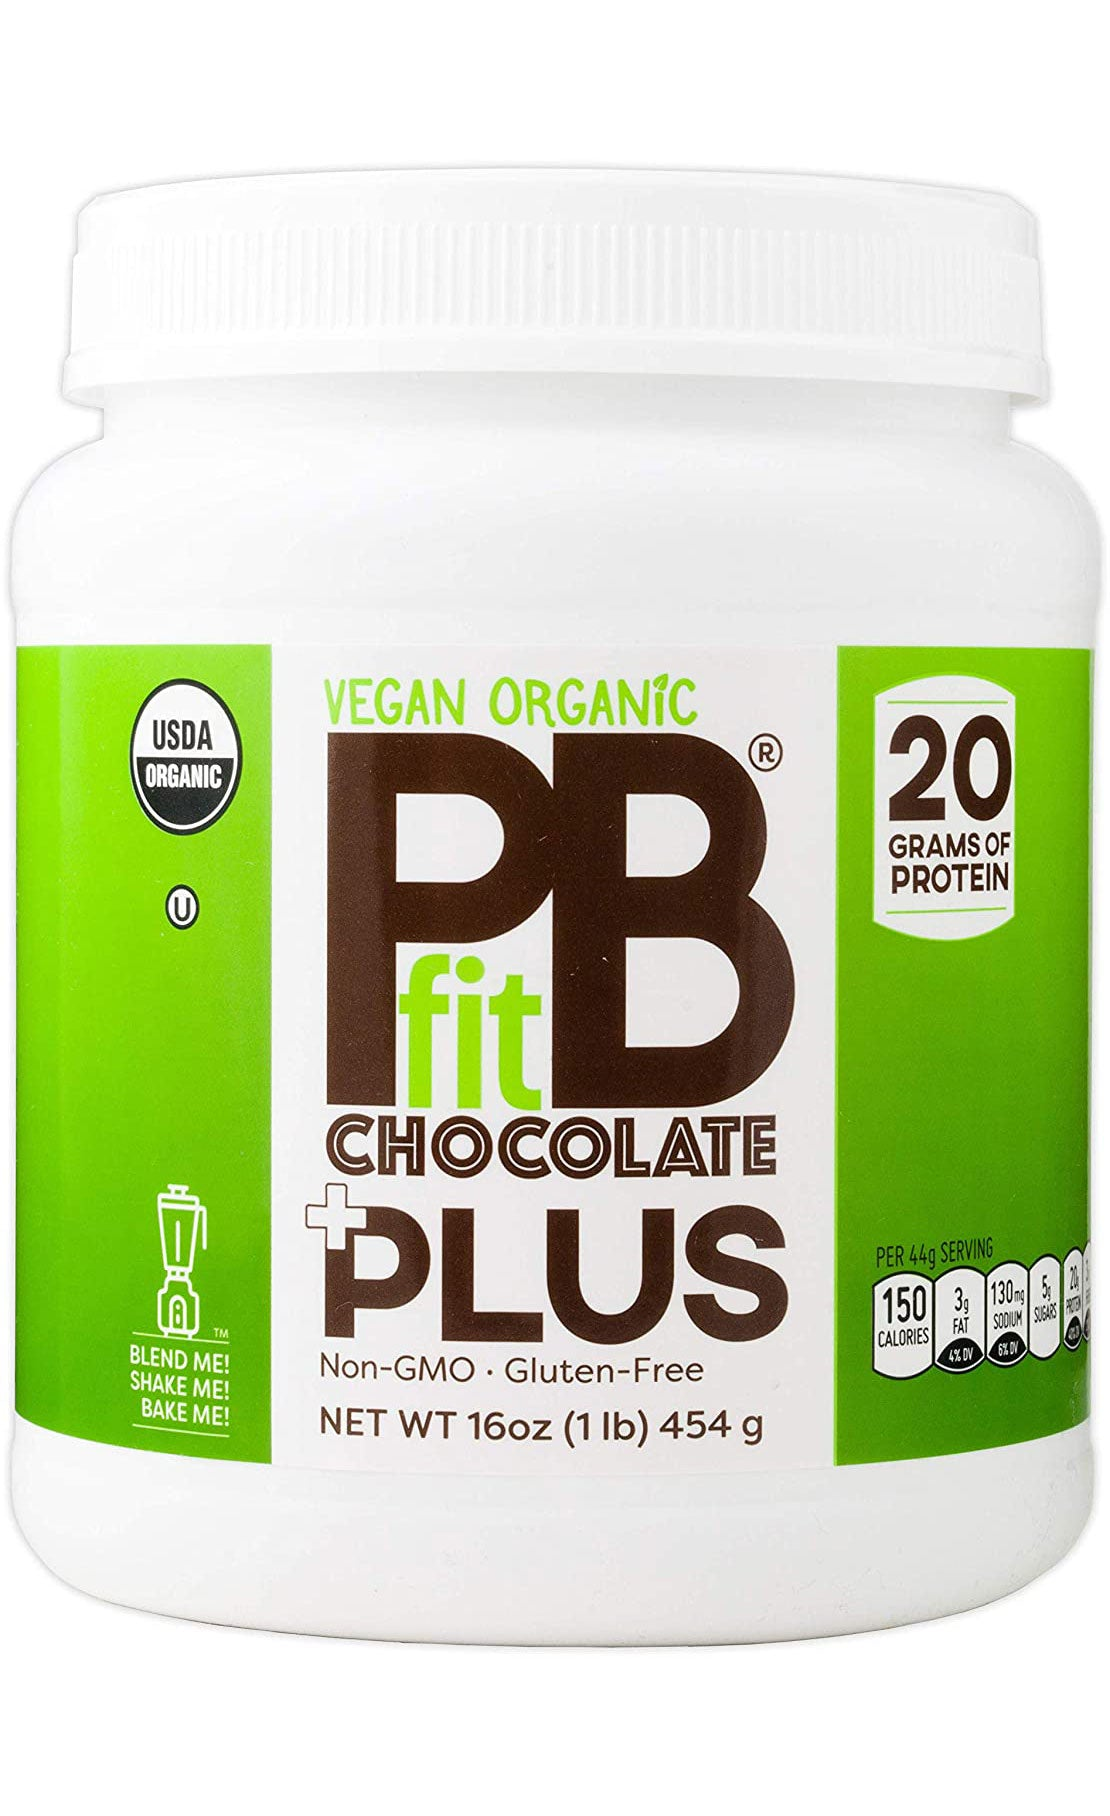 PBfit Vegan Organic Chocolate Plus Powder